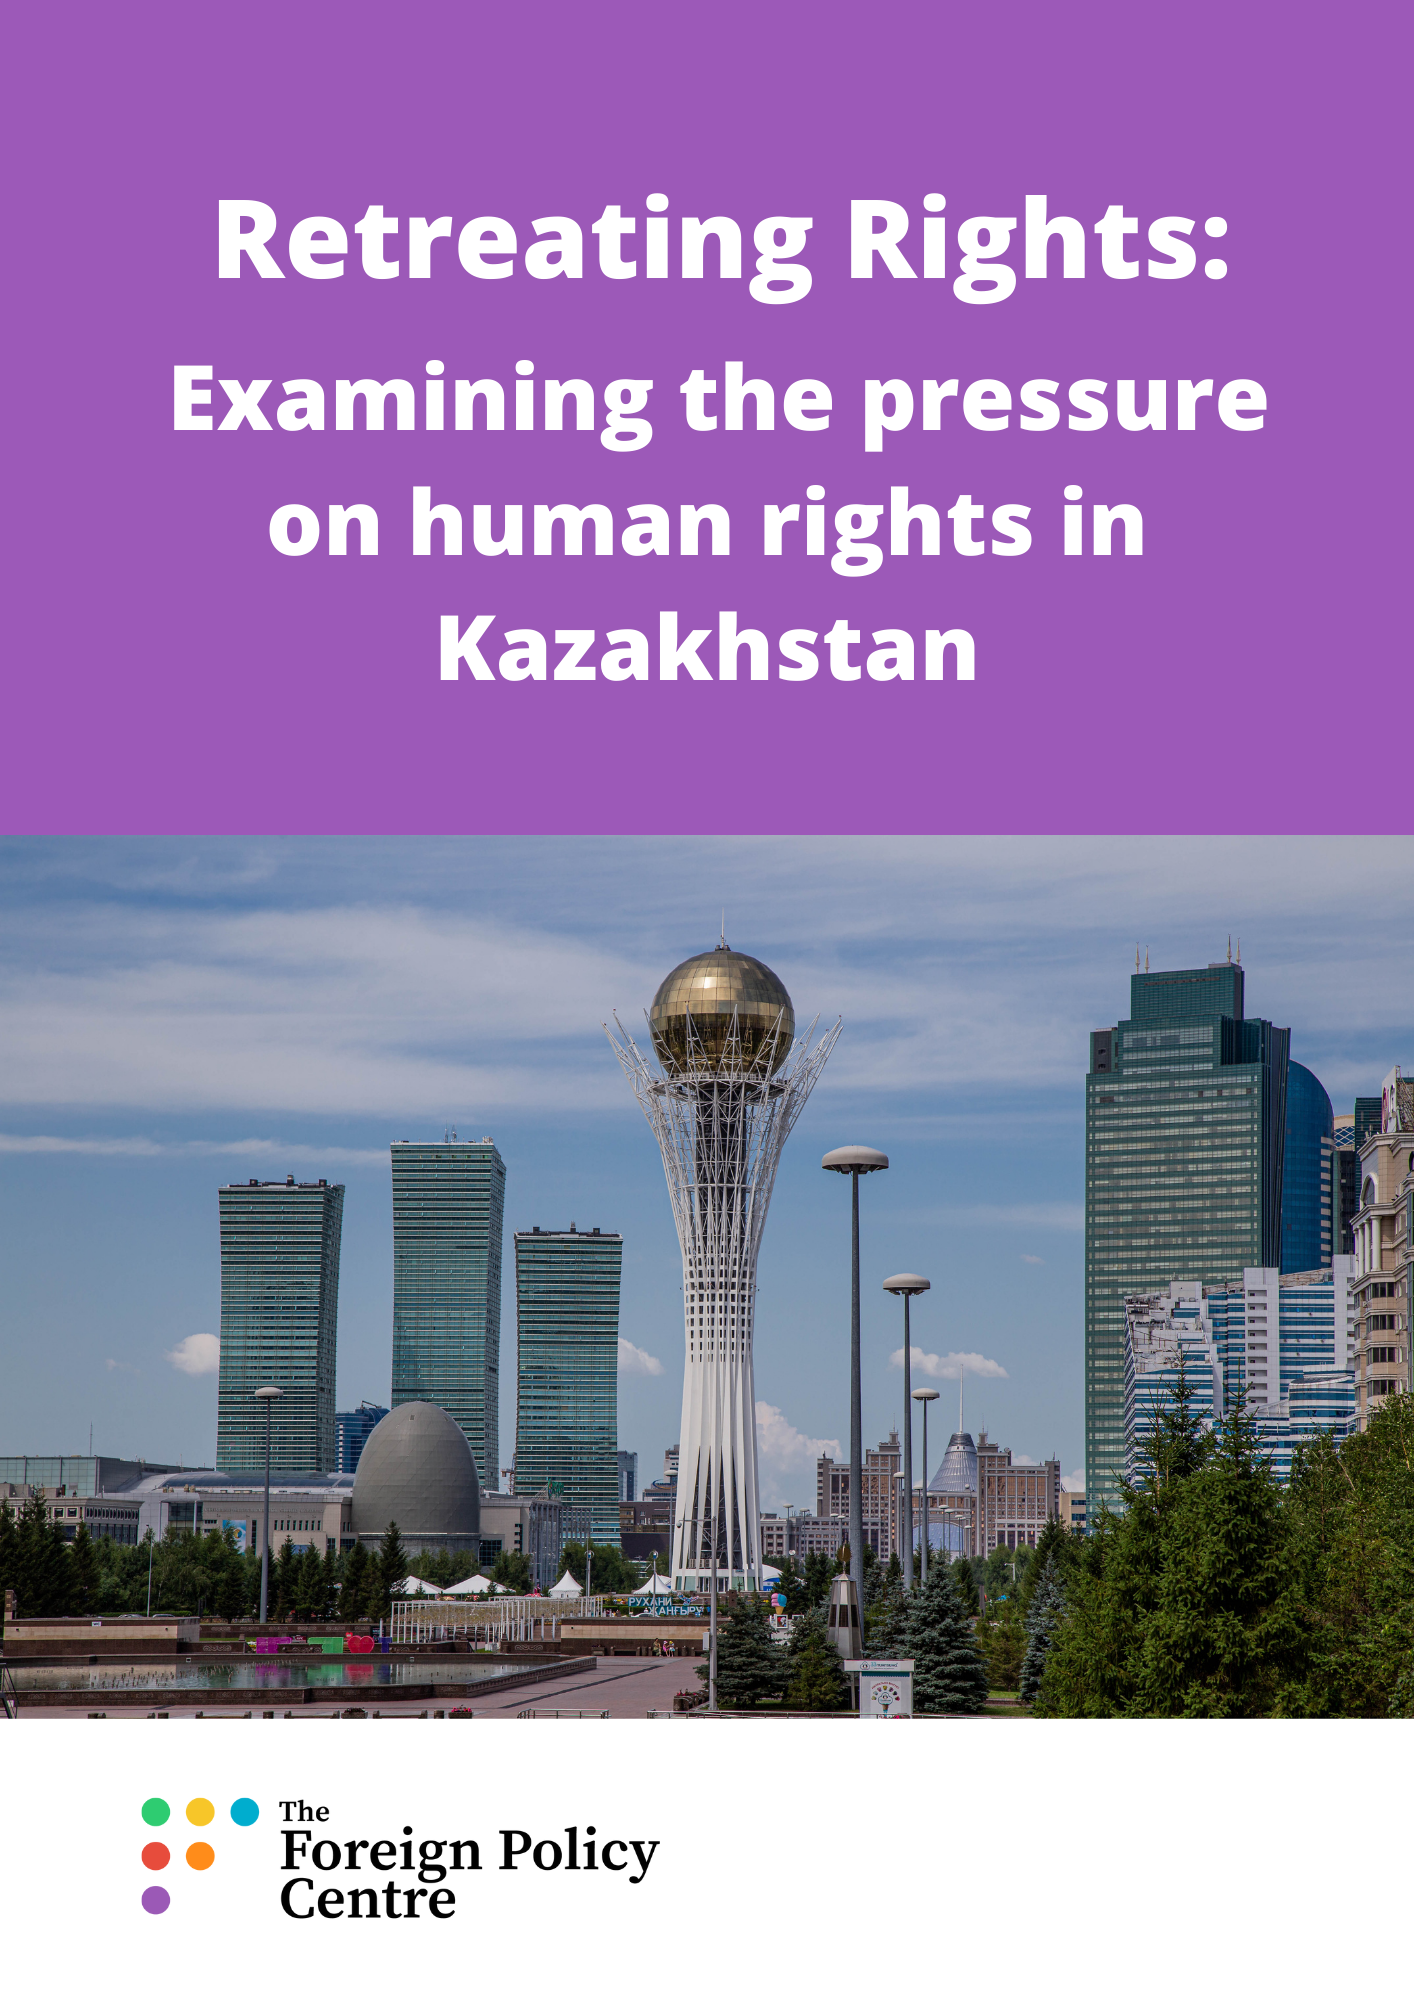 Retreating Rights: Examining the pressure on human rights in Kazakhstan